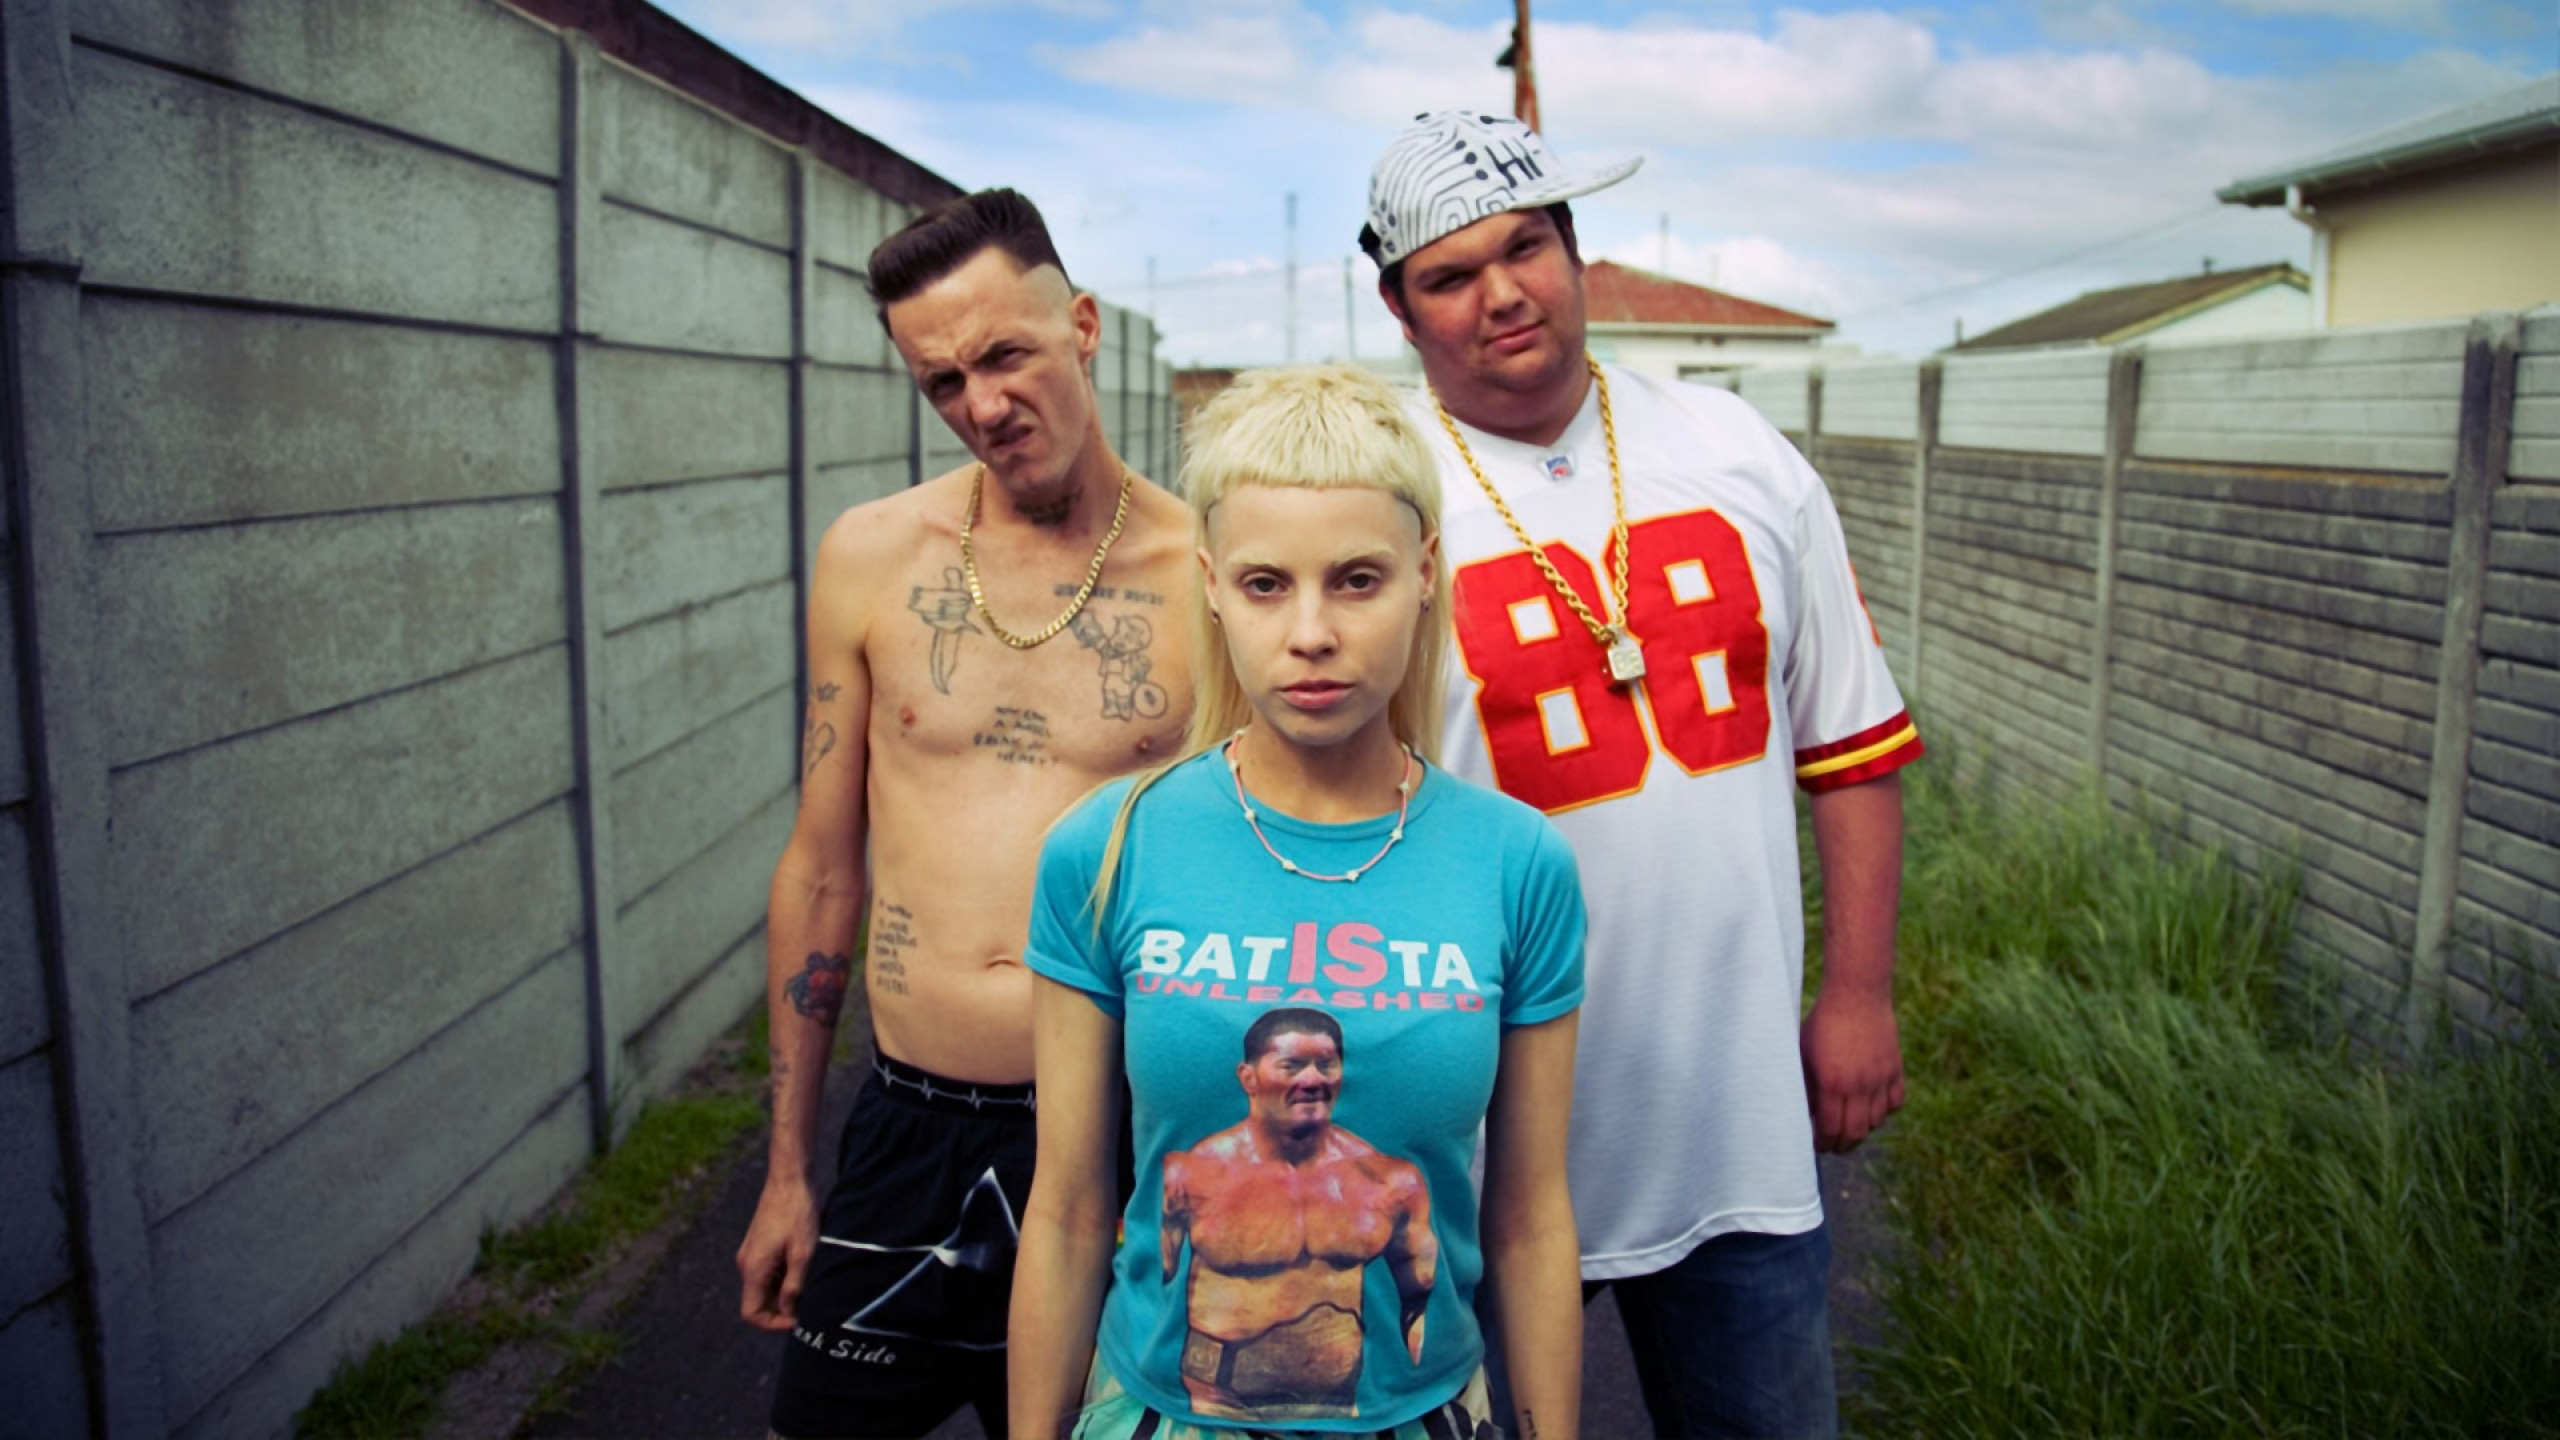 2560x1440  Wallpaper die antwoord, tattoo, girl, blonde, fence